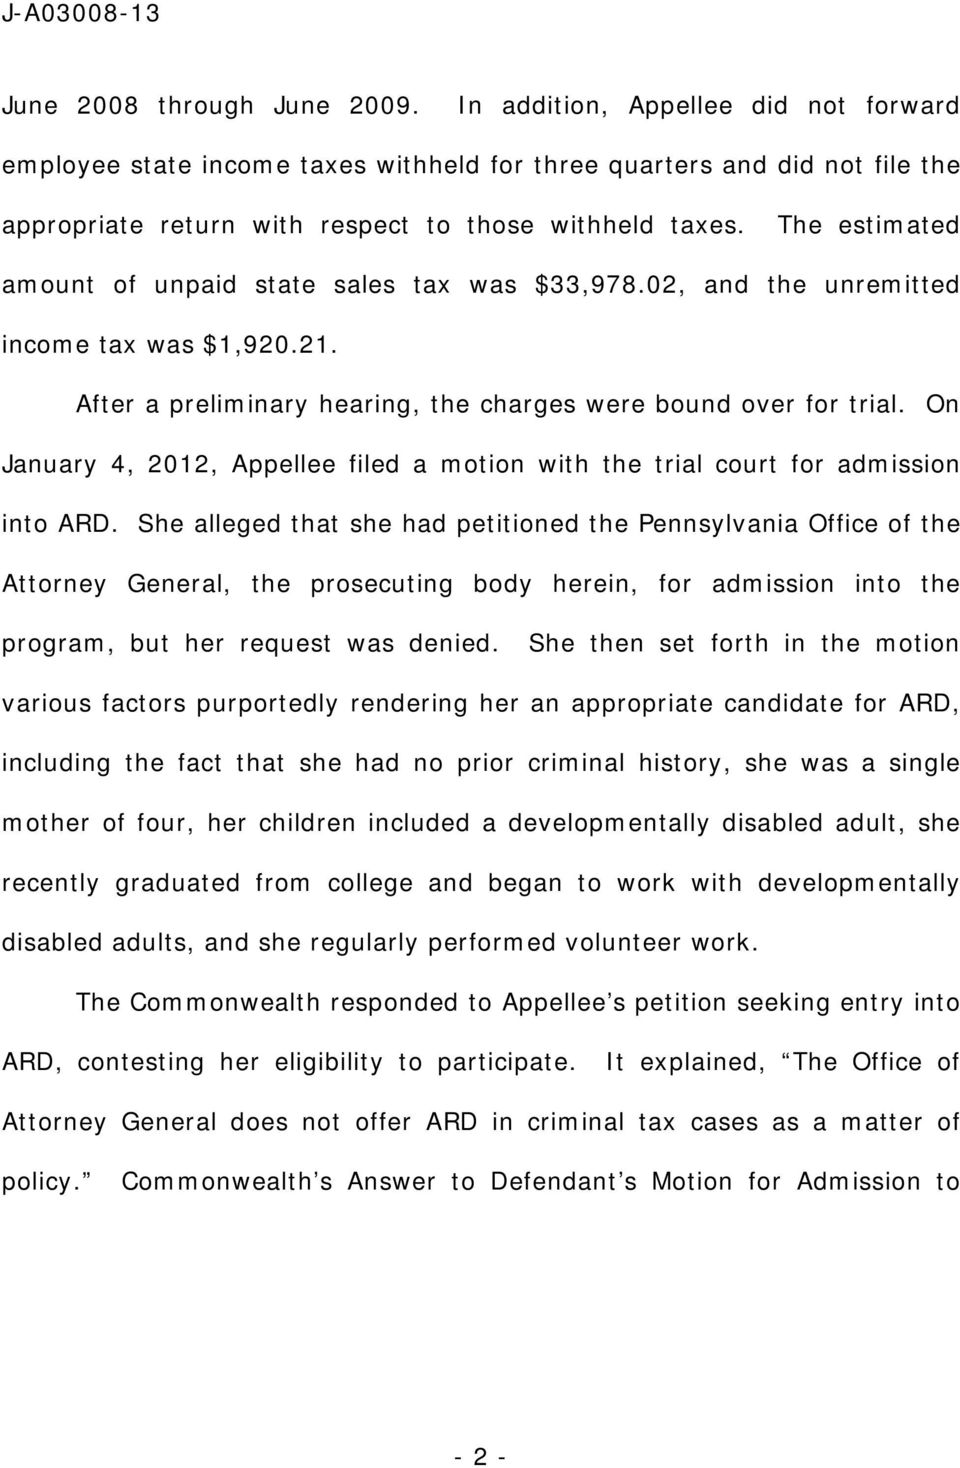 On January 4, 2012, Appellee filed a motion with the trial court for admission into ARD.